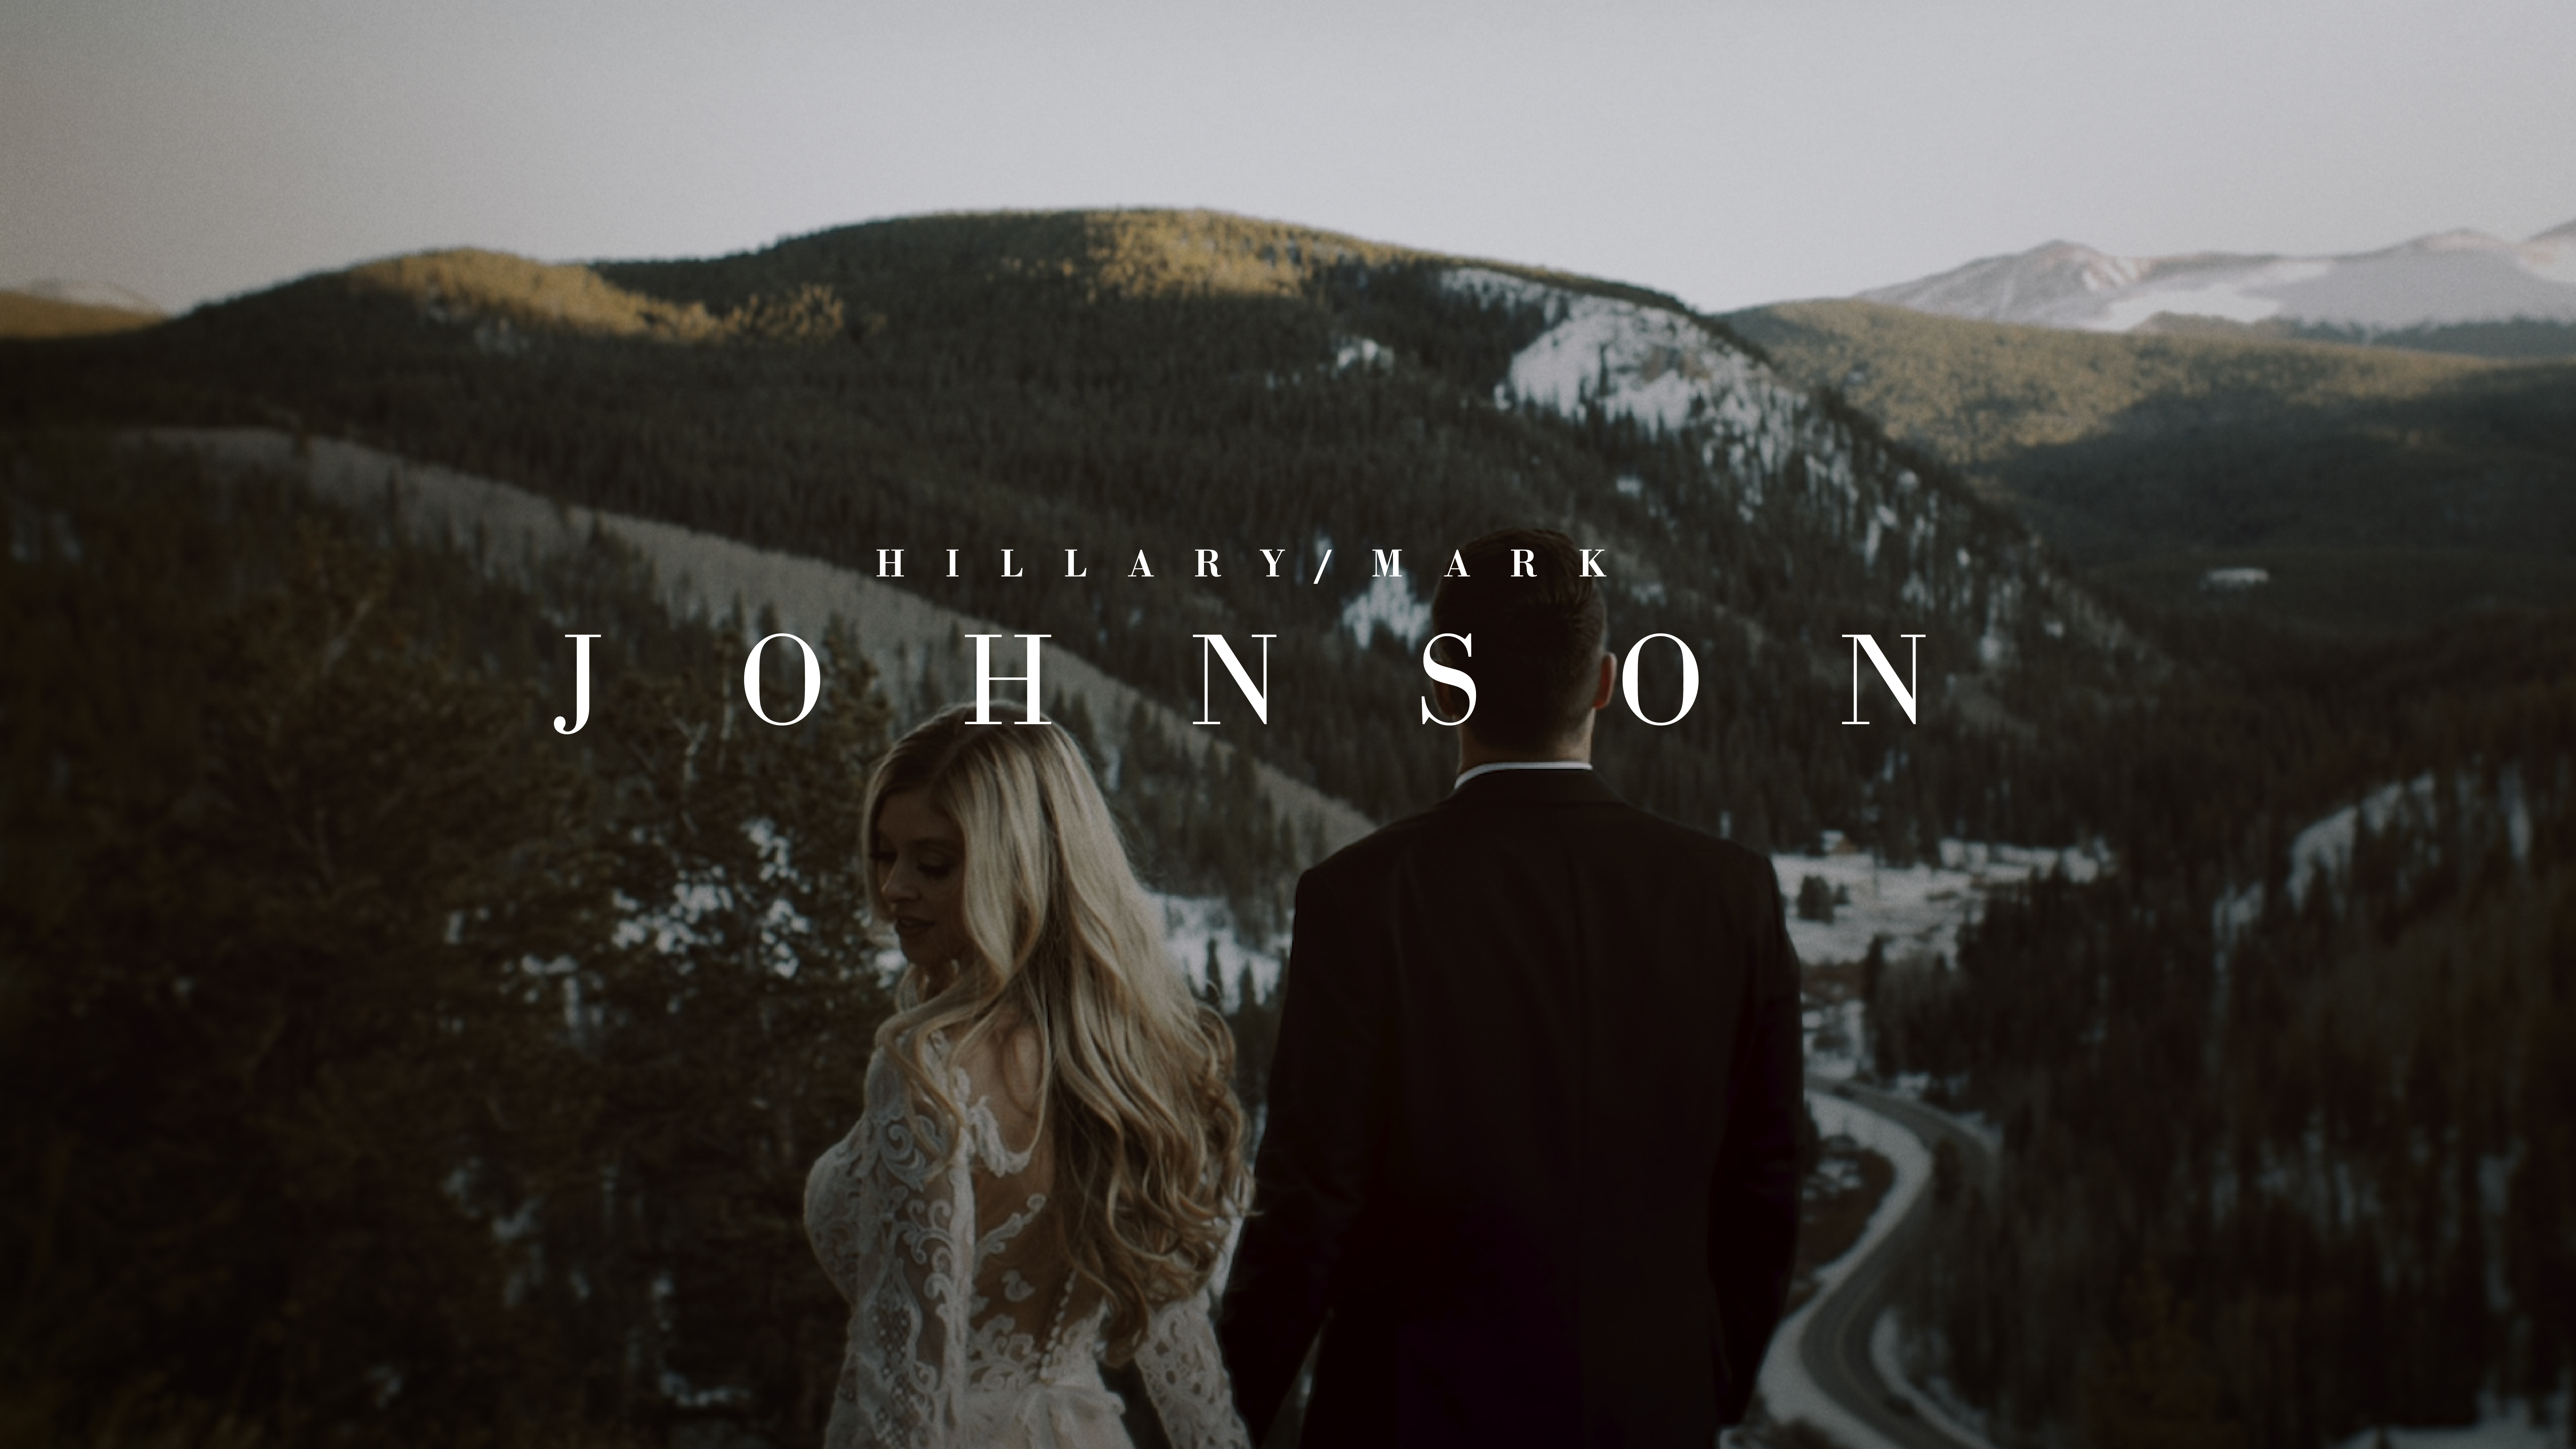 Hillary + Mark | Breckenridge, Colorado | The Lodge at Breckenridge